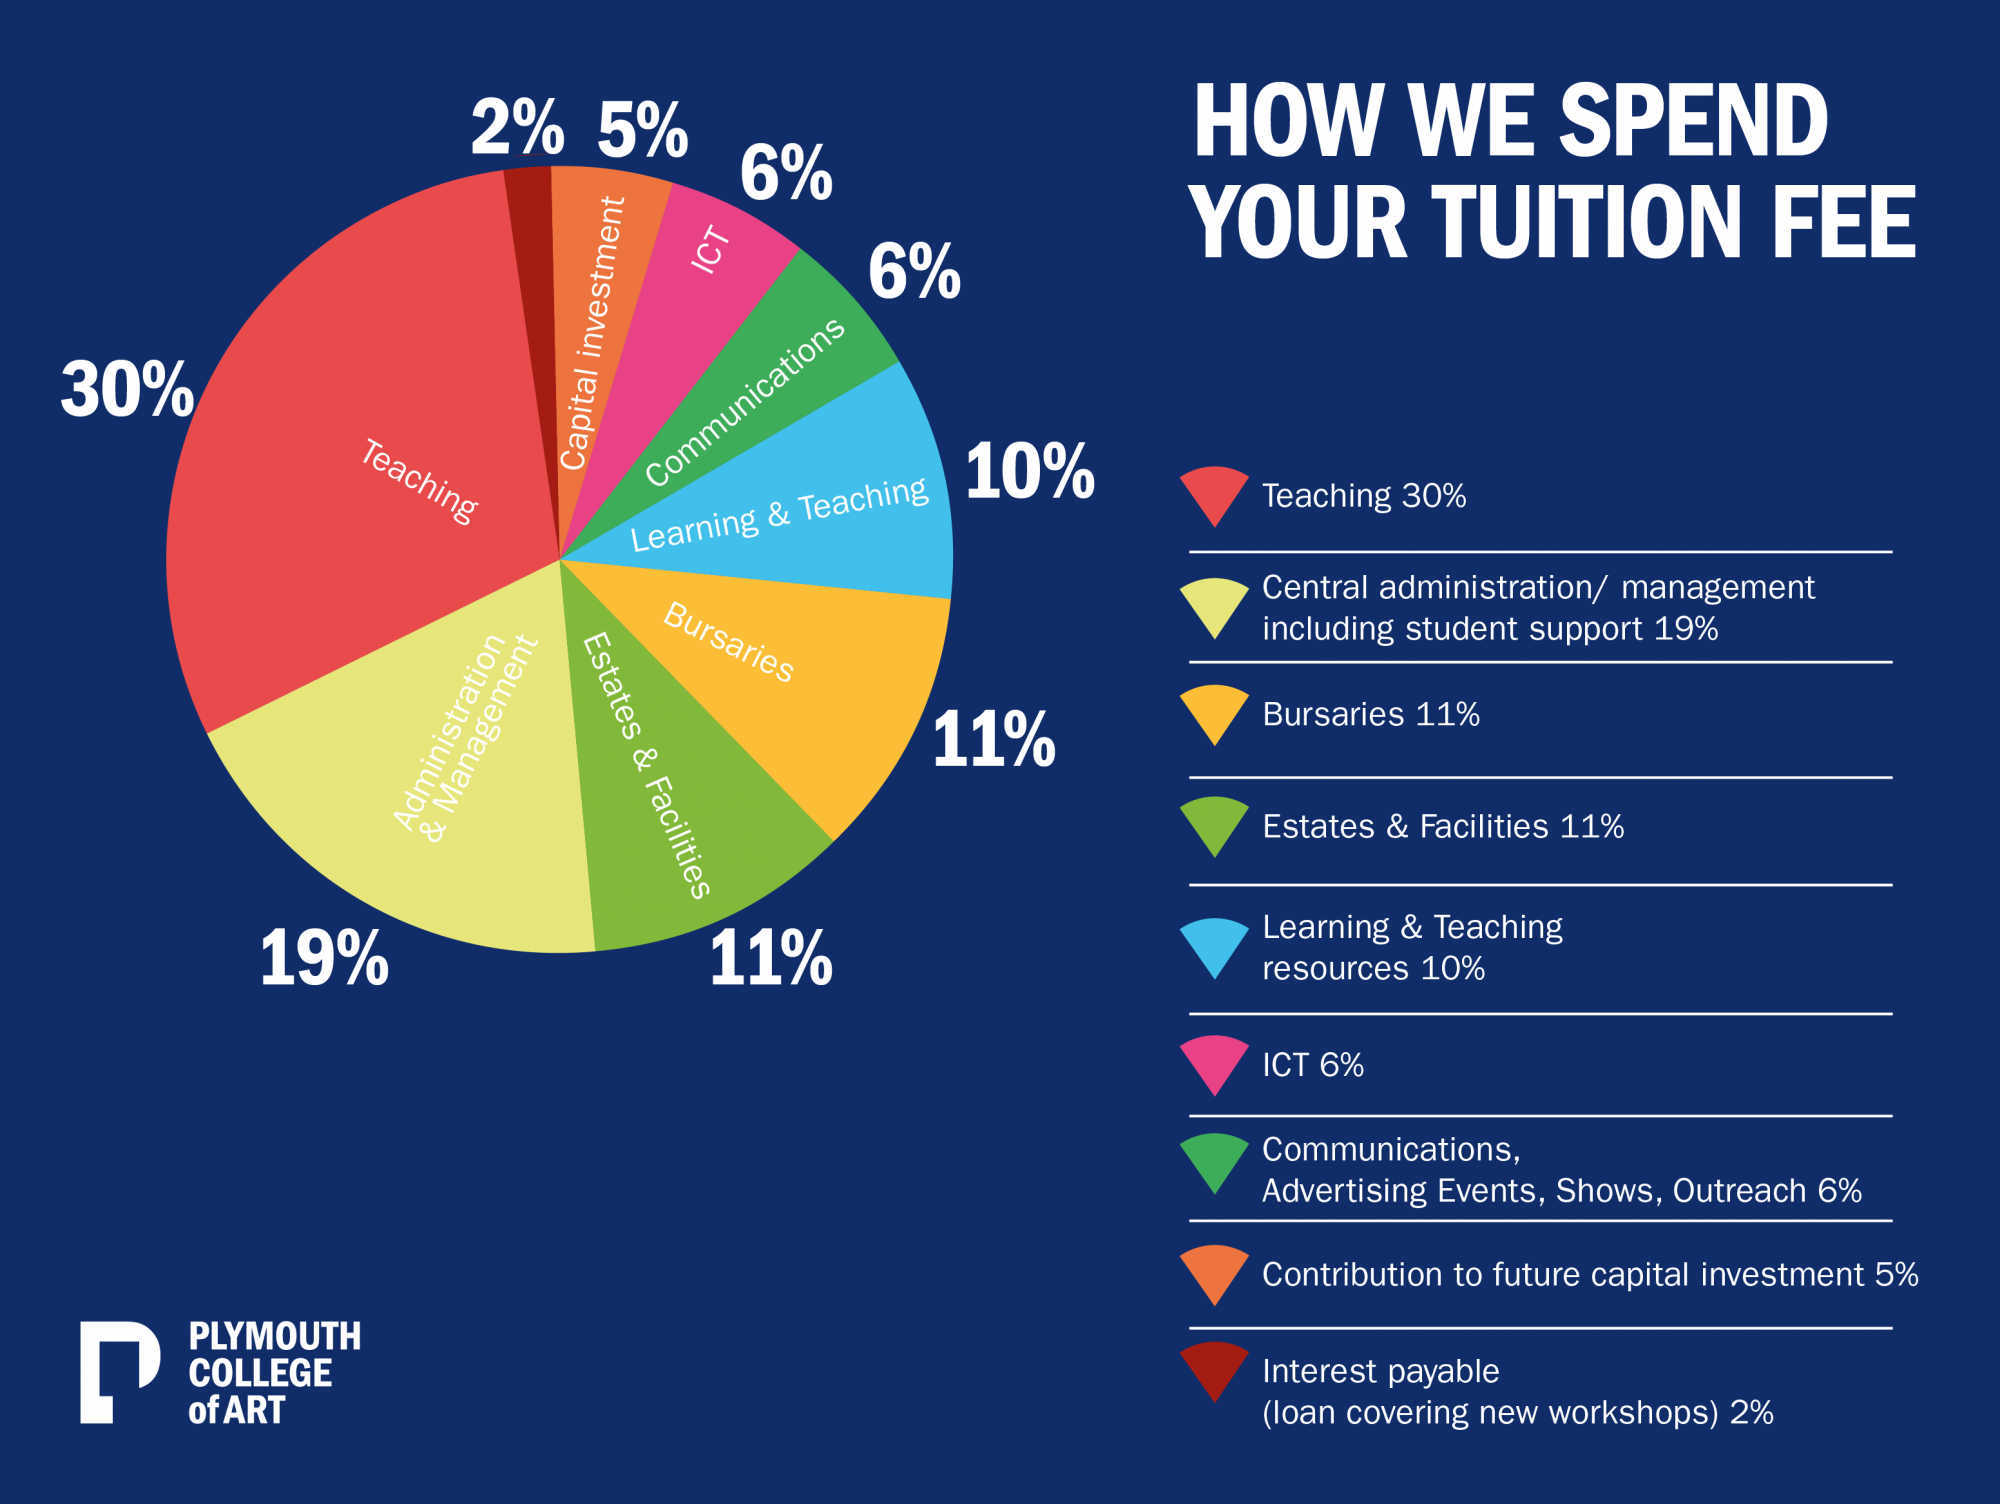 How we spend your tuition fee